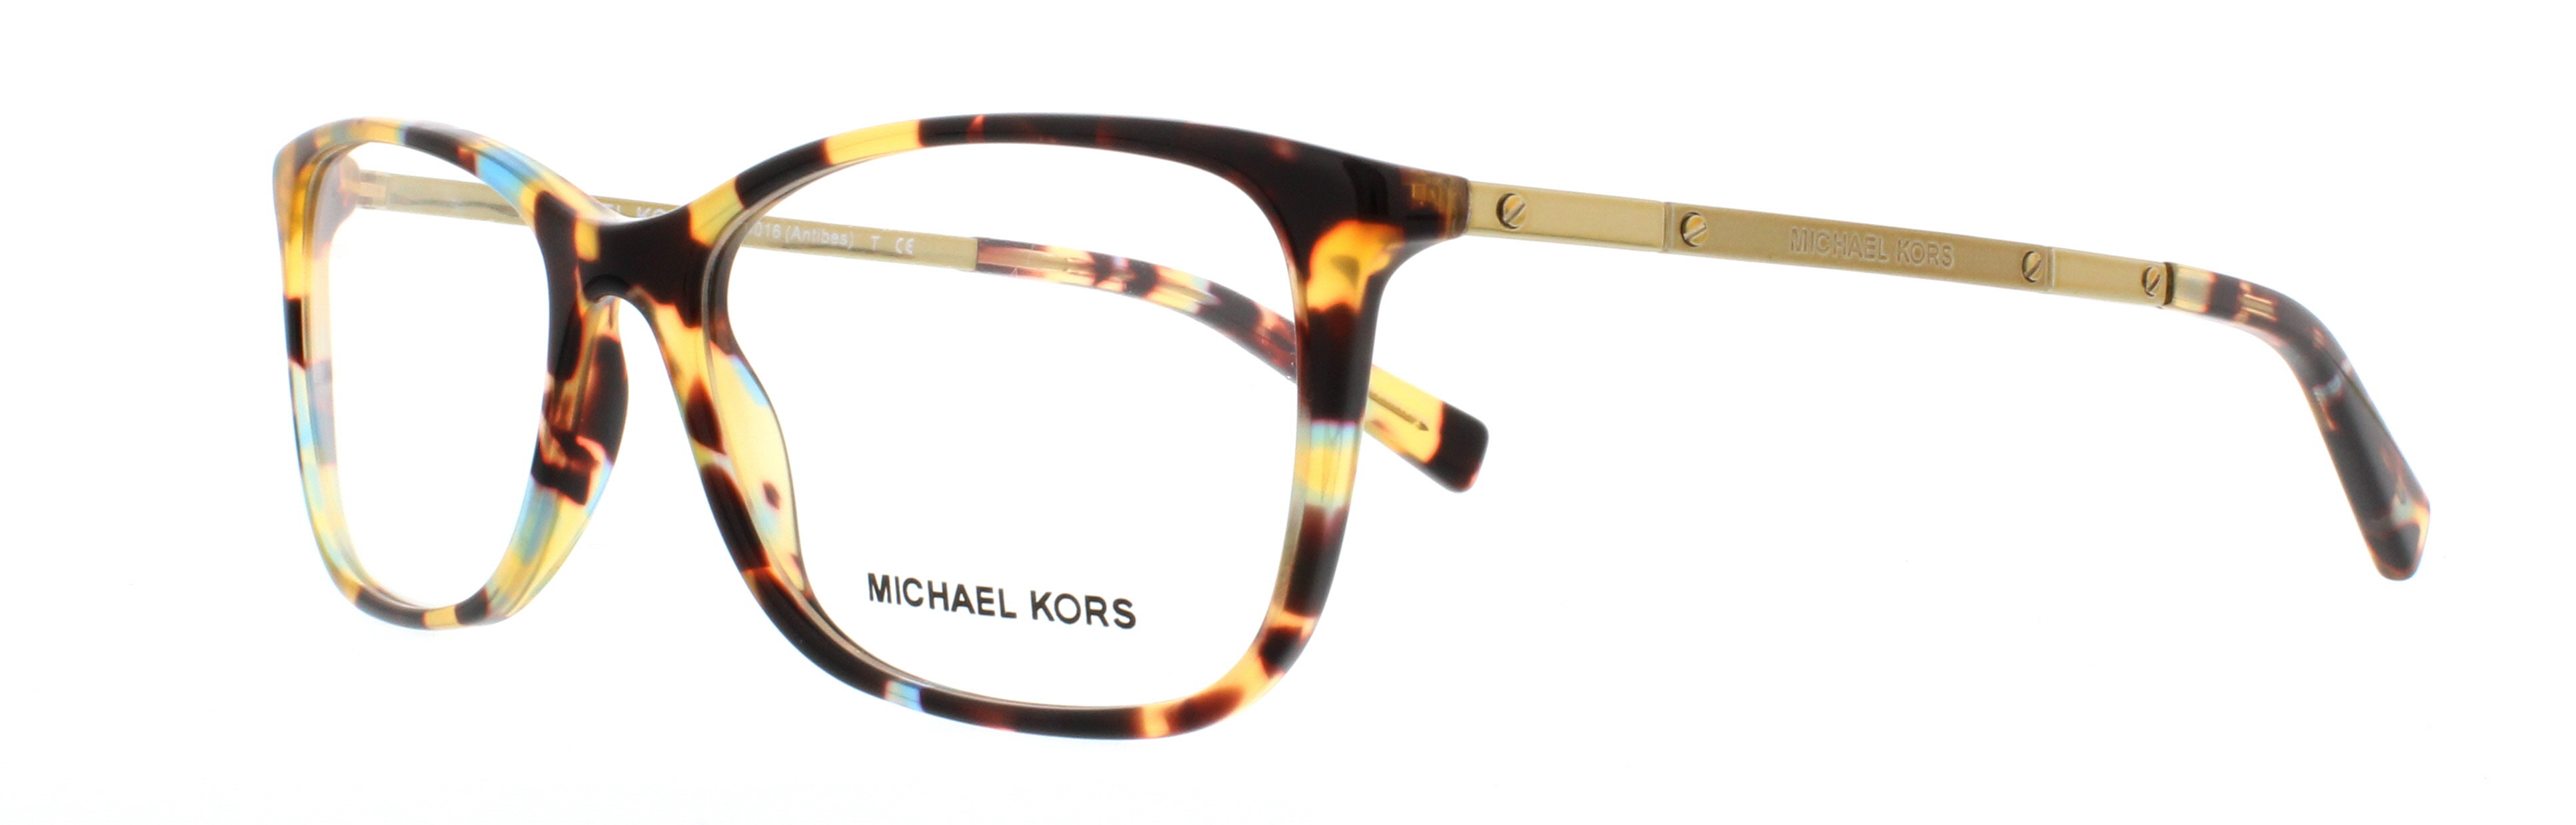 d67be52d520 Designer Frames Outlet. Michael Kors MK4016 Antibes